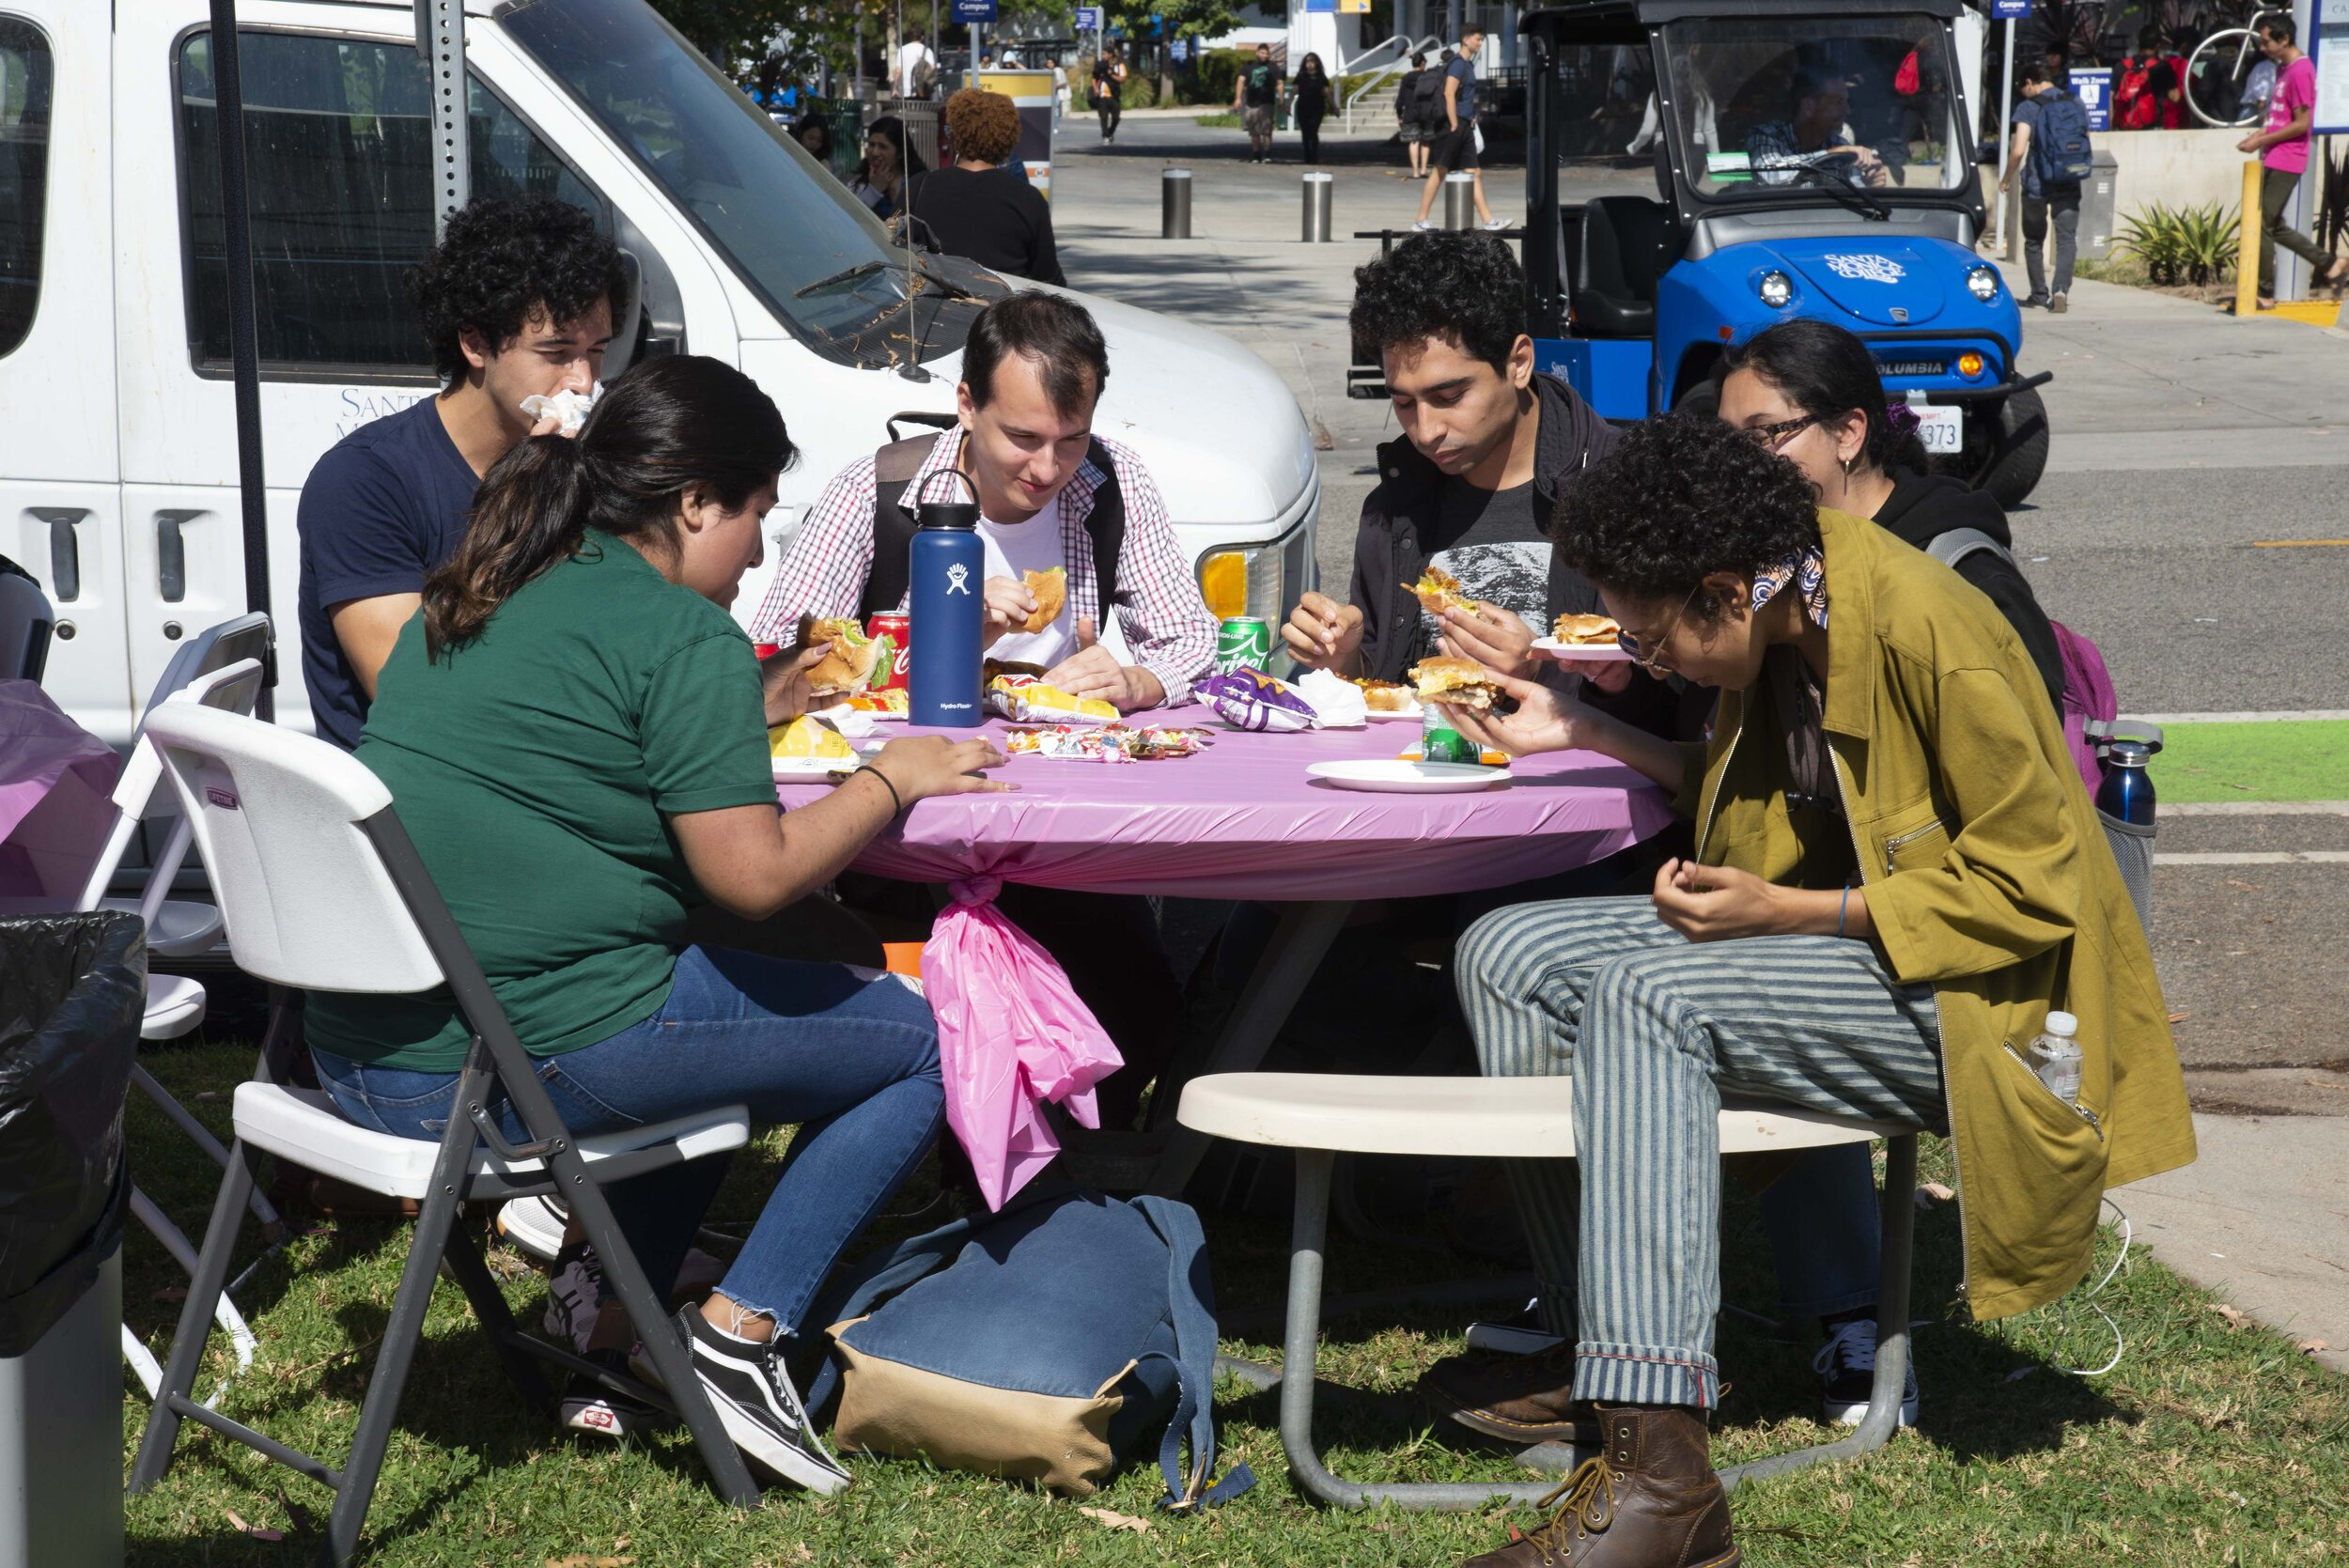 SMC students enjoy the delicious barbeque provided by the campus police department on Tuesday, October 8th, 2019.  (Rachel O'Brien/The Corsair)